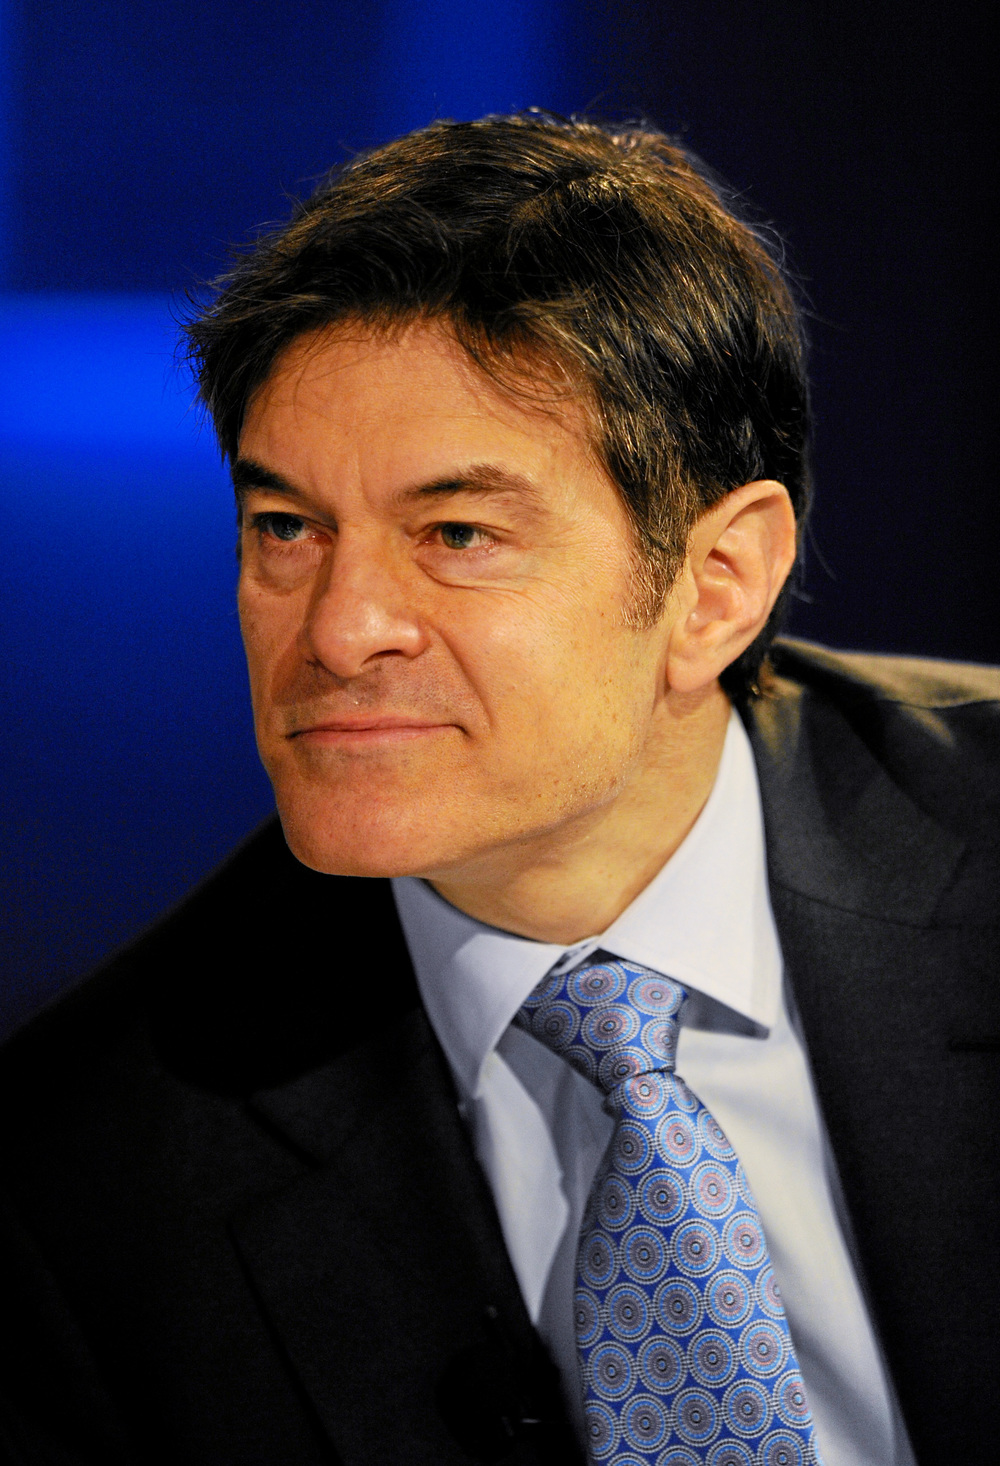 Dr. Oz, who will visit Israel this month. Credit: World Economic Forum.